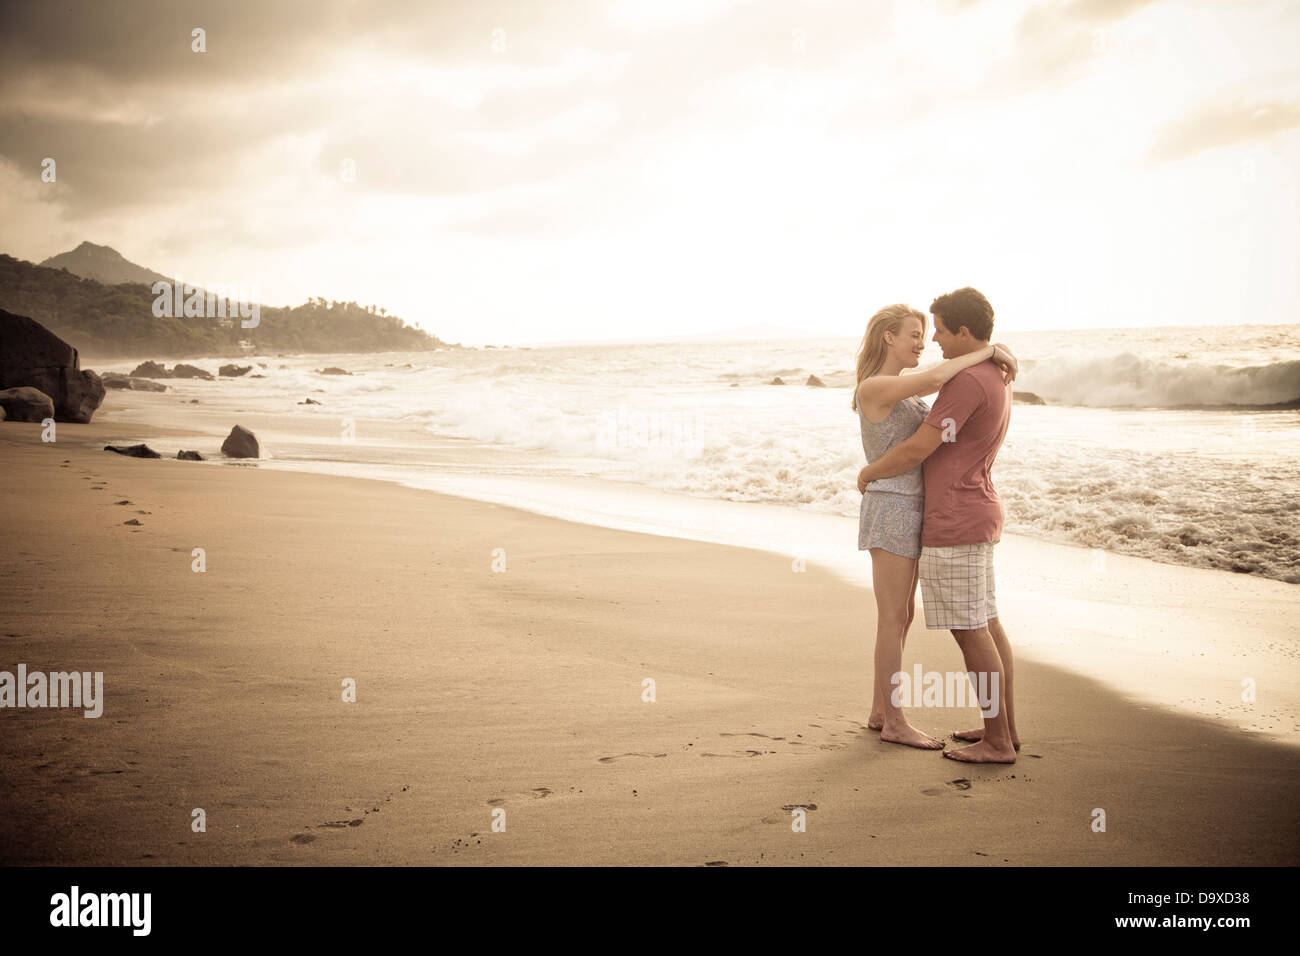 Romantic young couple on beach - Stock Image